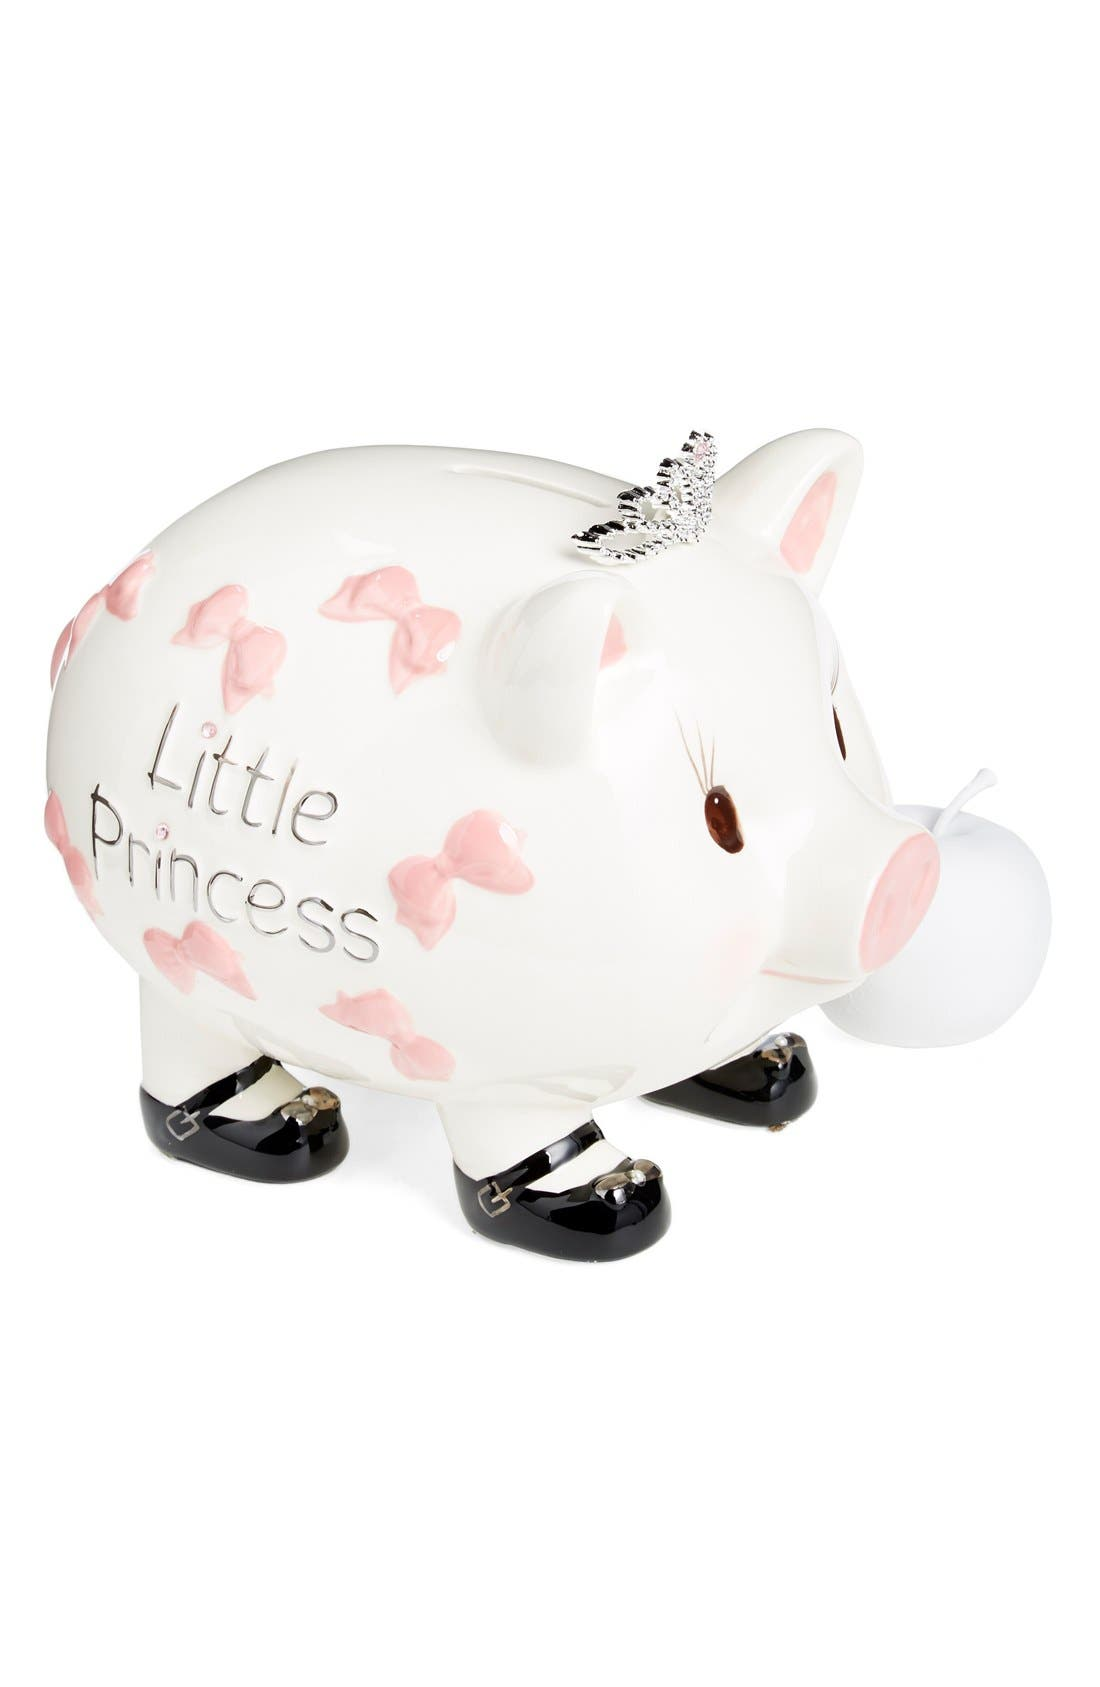 Mud pie ballerina piggy bank mud pie - Mud Pie Ballerina Piggy Bank Mud Pie 18